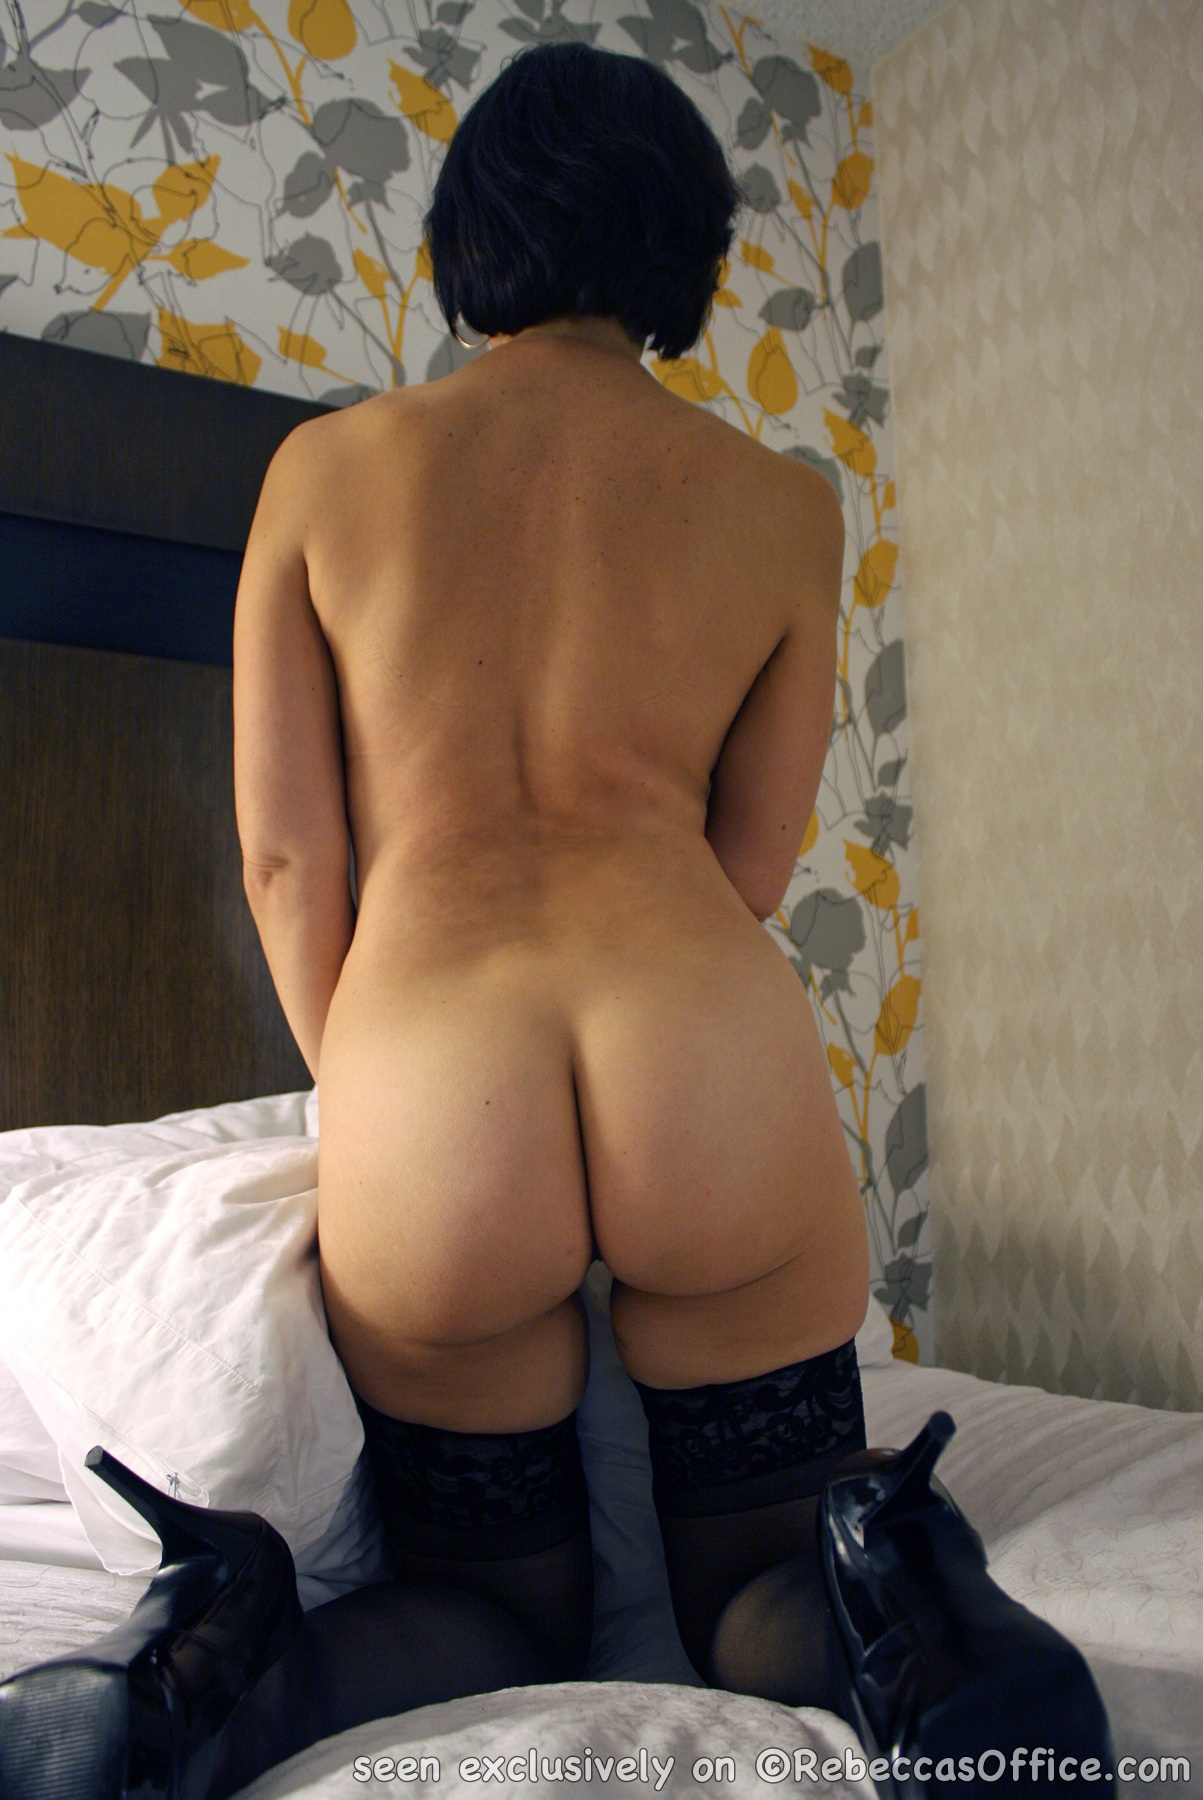 That wife swinger tits gallery well